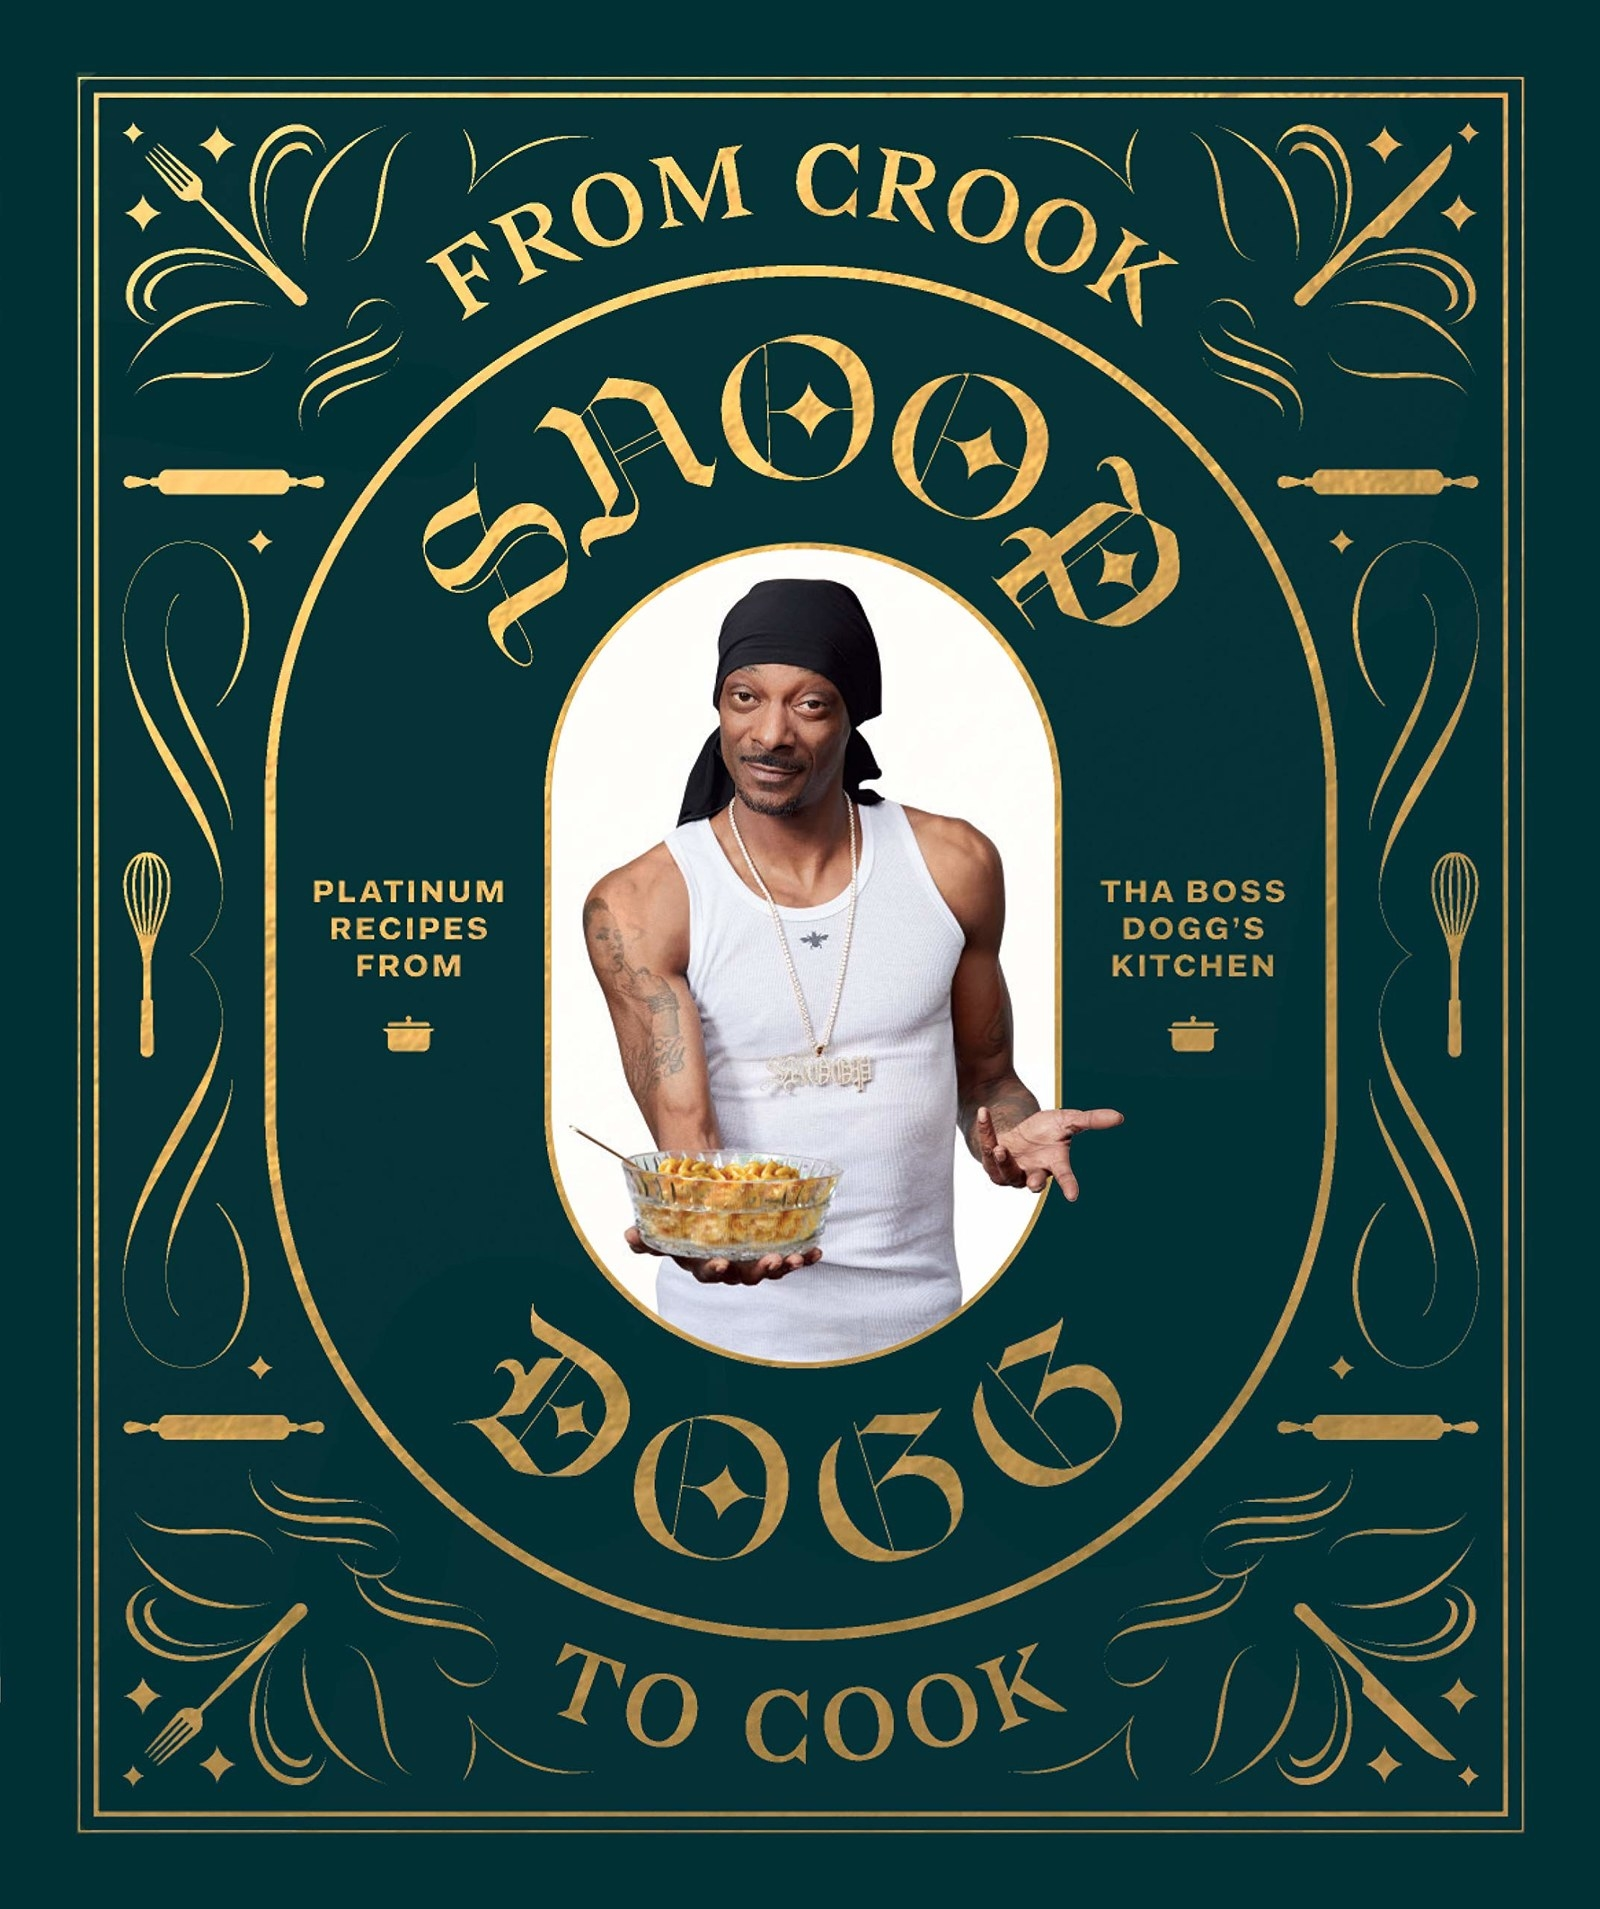 If you want to check out even more of Snoop Dogg's recipes, check out his book, From Crook to Cook: Platinum Recipes from Tha Boss Dogg's Kitchen  . - From Crook to Cook  is available on Amazon for  $24.96 .